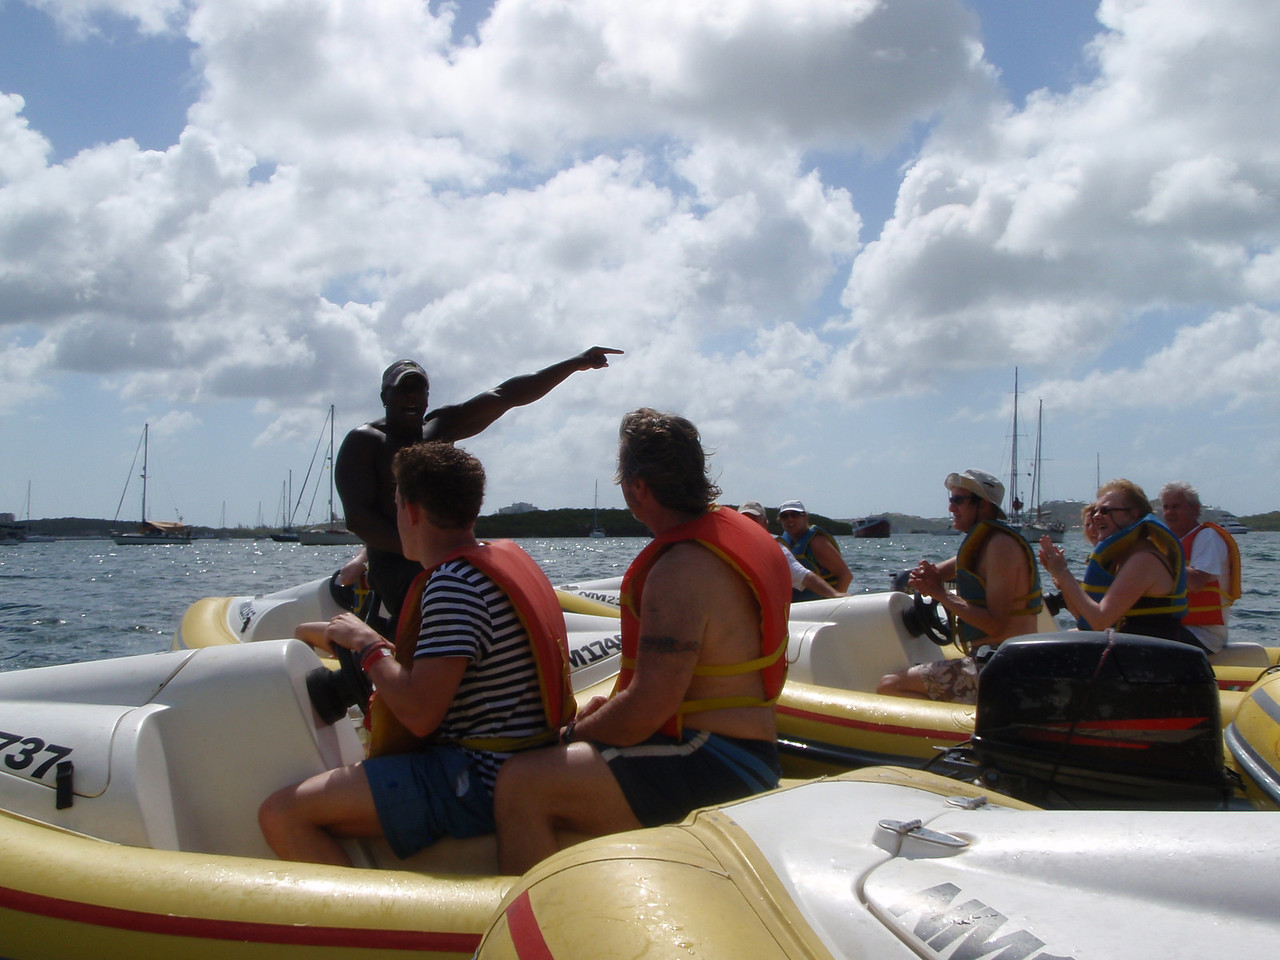 Our guide provides some final instruction after we re-enter Simpson Bay Lagoon.